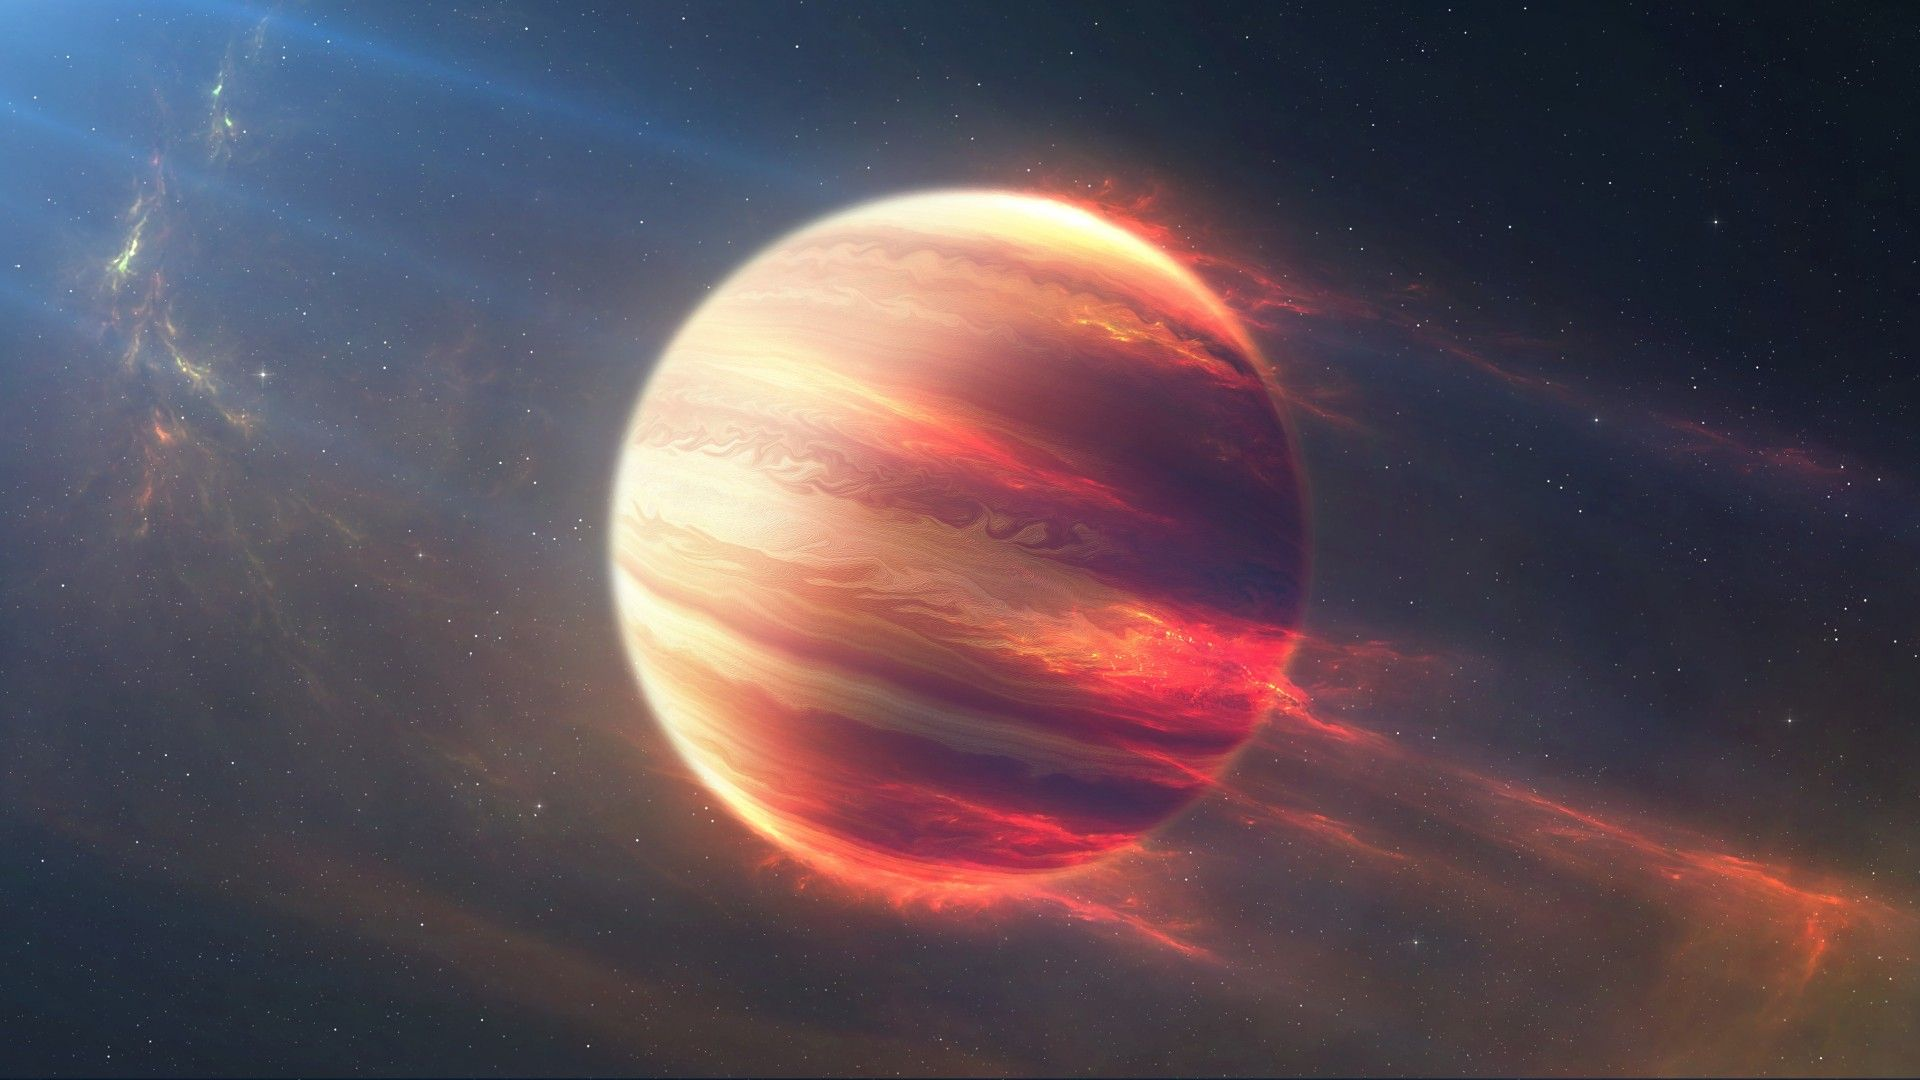 Download Wallpapers Of Planet Fire 4k Space 3024 Available In Hd 4k Resolutions For Desktop Mobile P Planets Wallpaper Wallpaper Space Universe Images